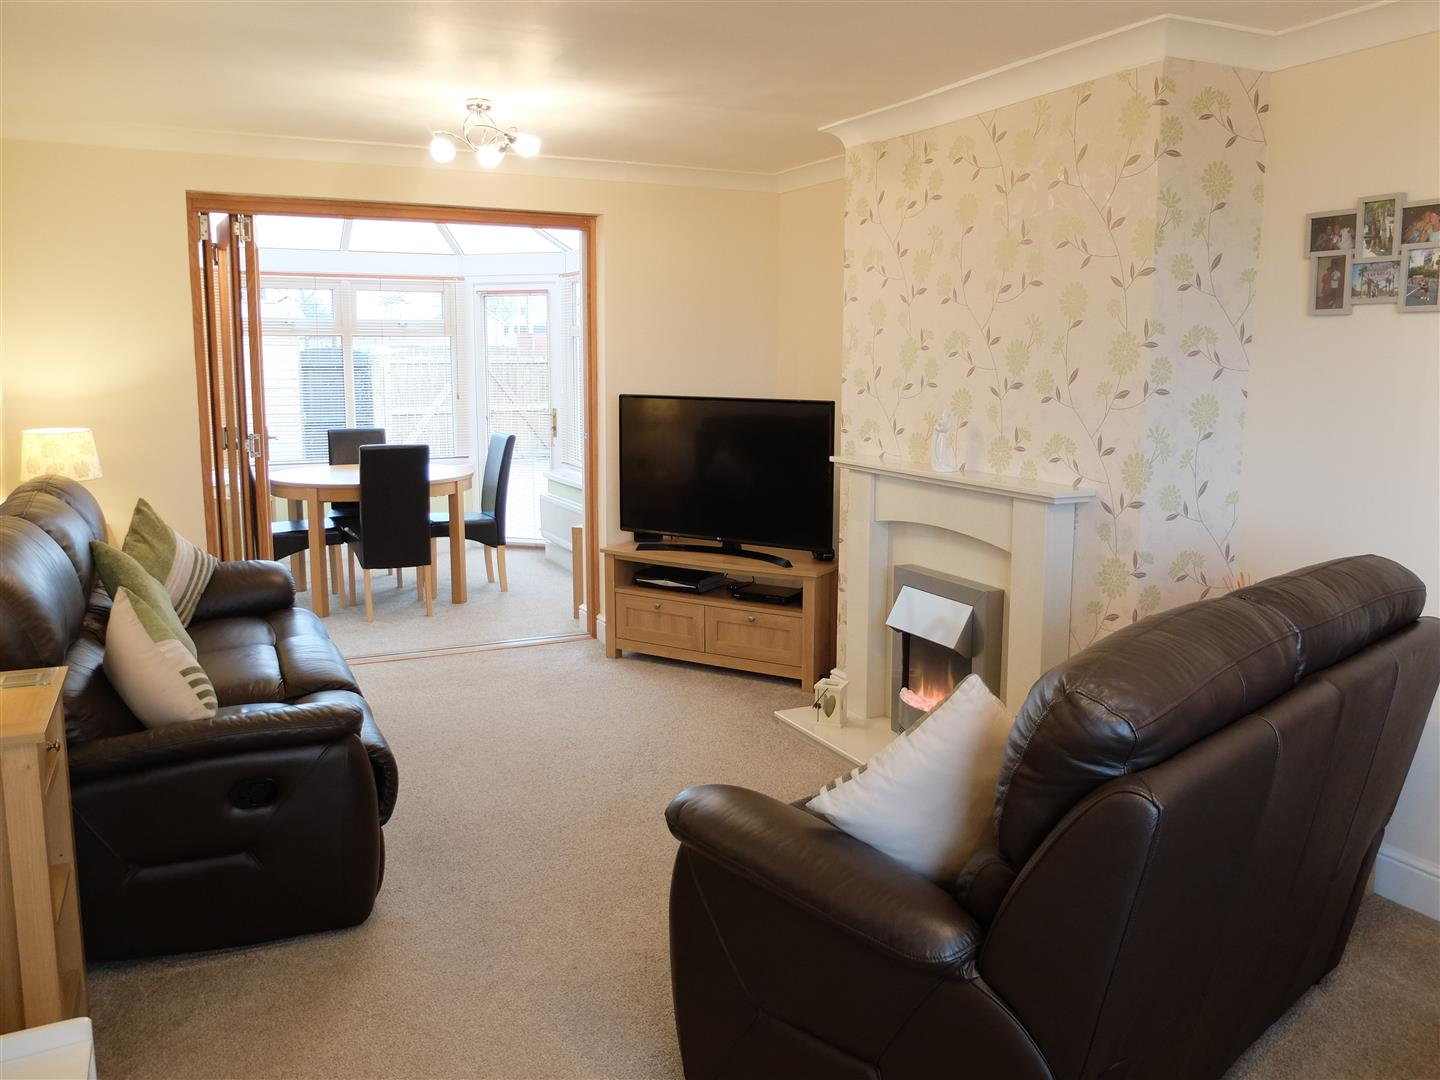 2 Bedrooms House - Mid Terrace For Sale 16 Troutbeck Drive Carlisle